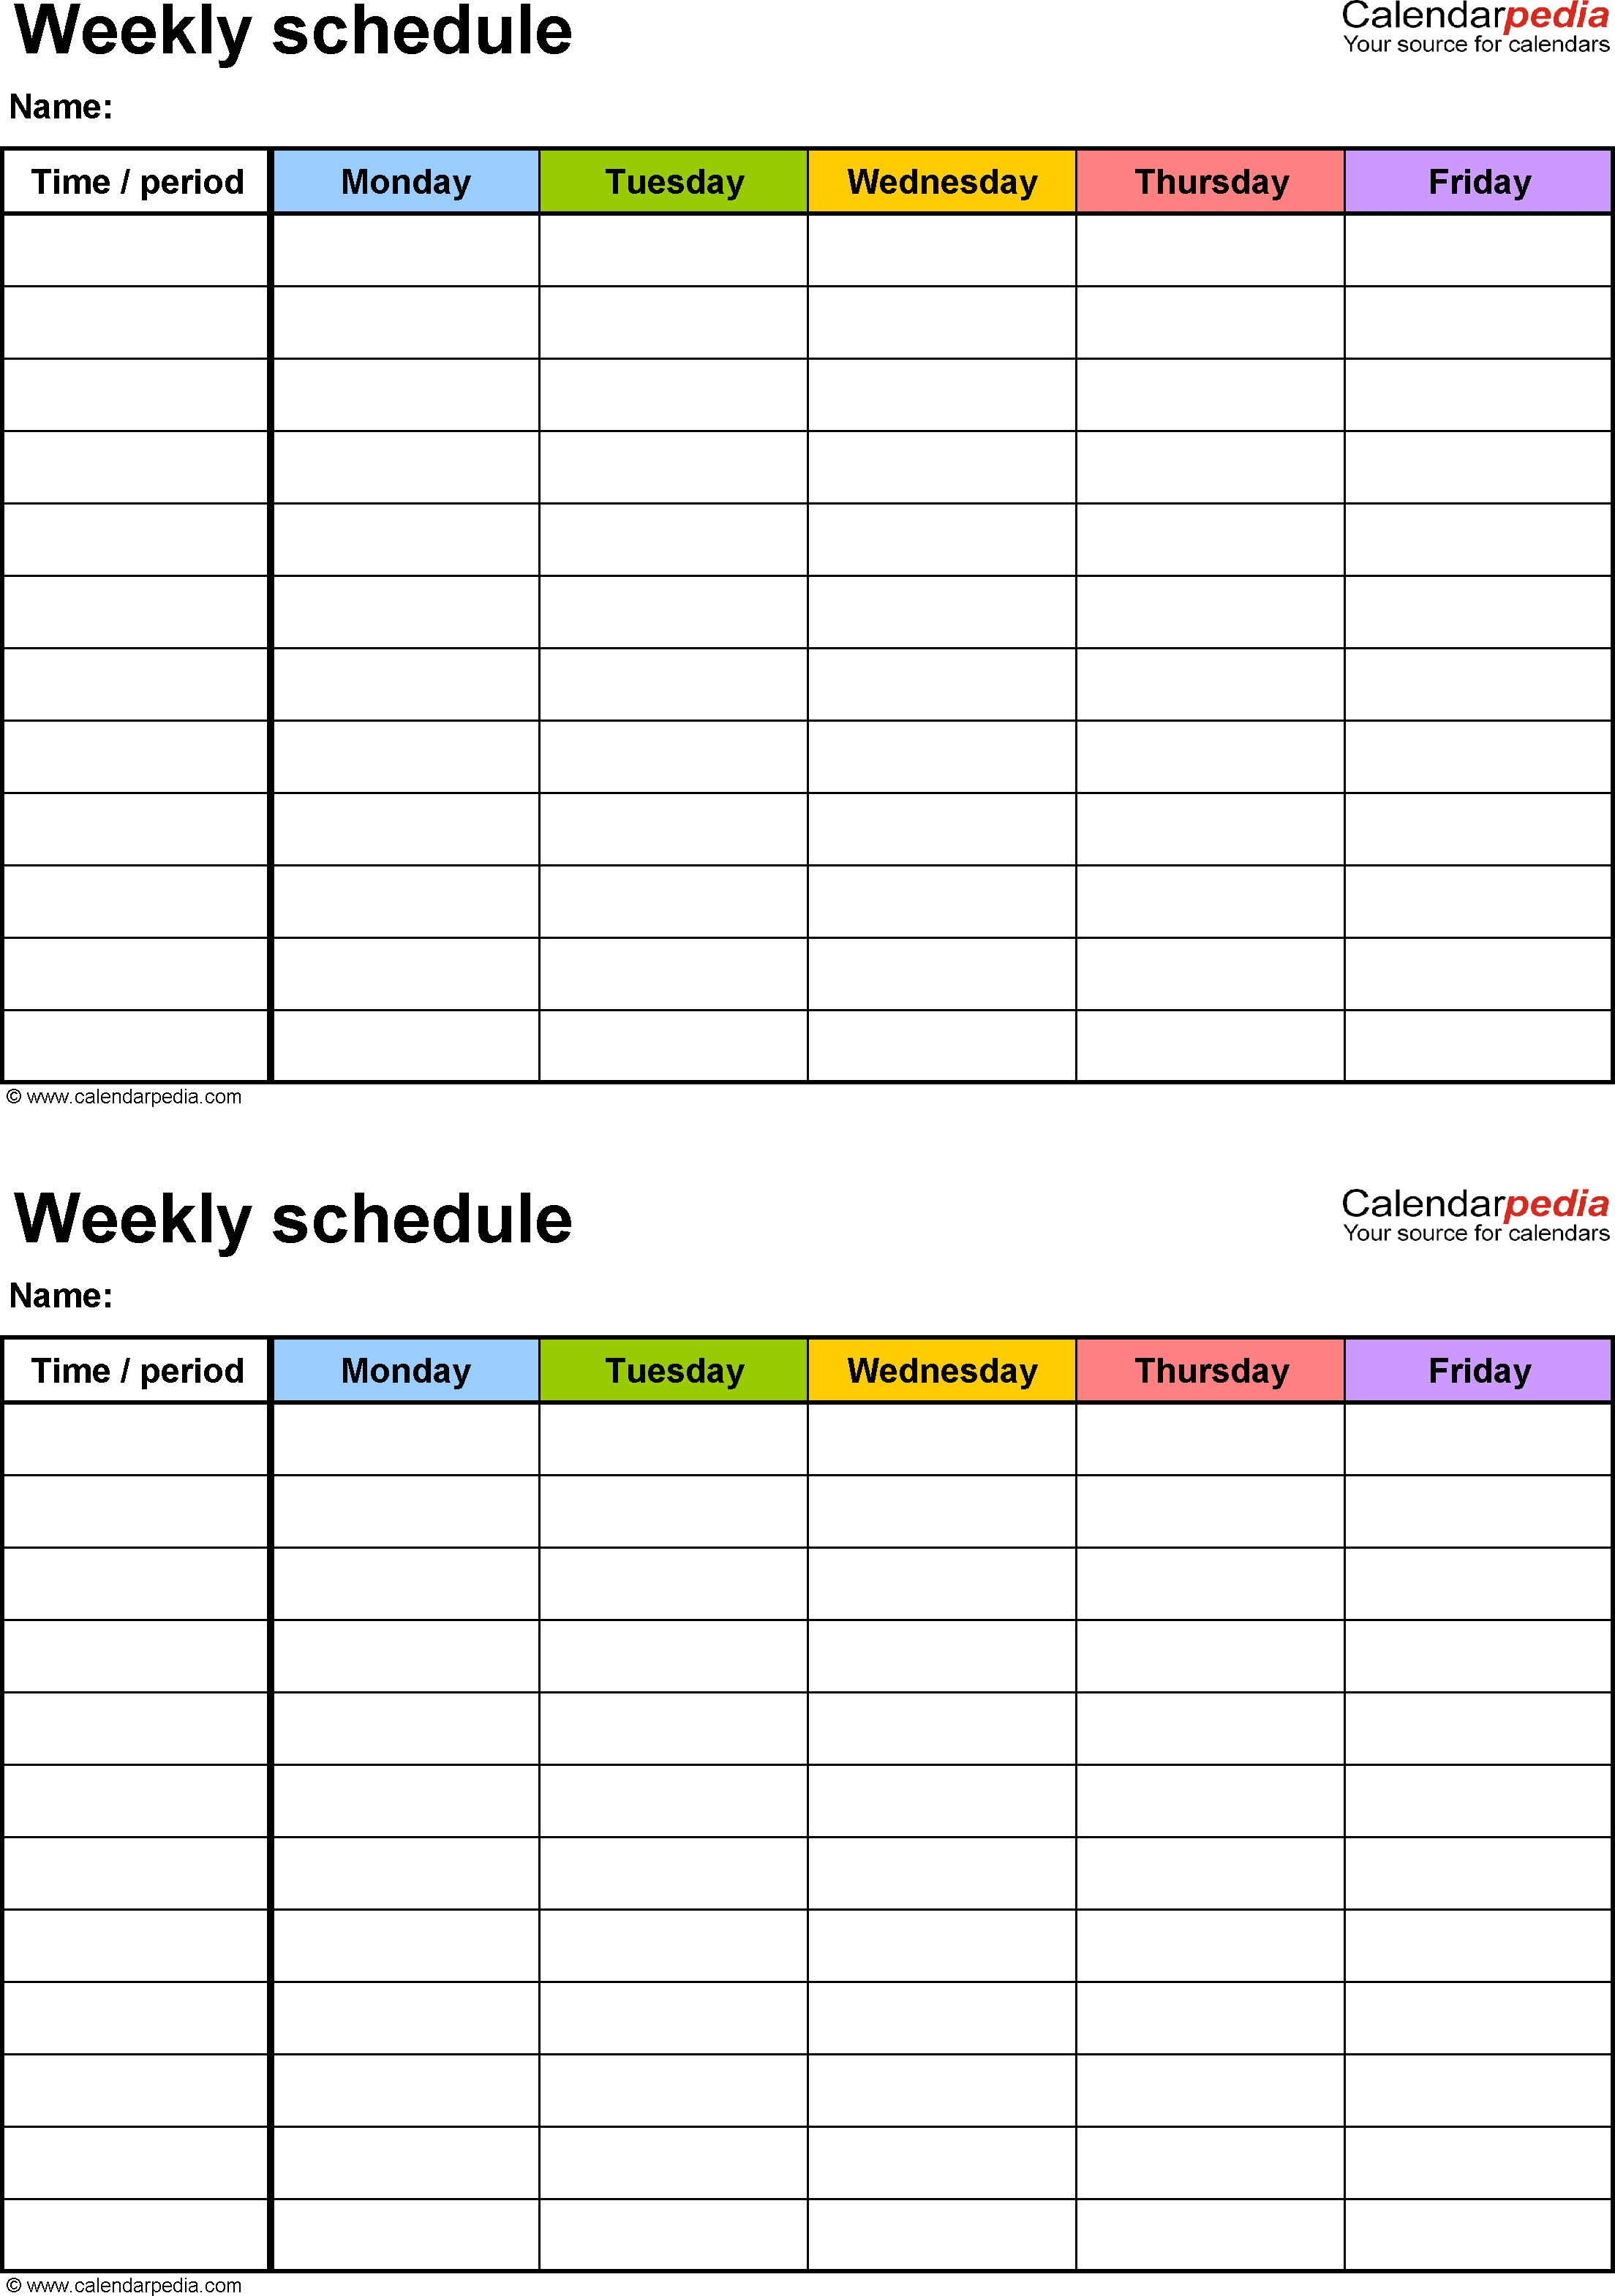 Free Weekly Schedule Templates For Word - 18 Templates inside 2 Week Calendar Template Word